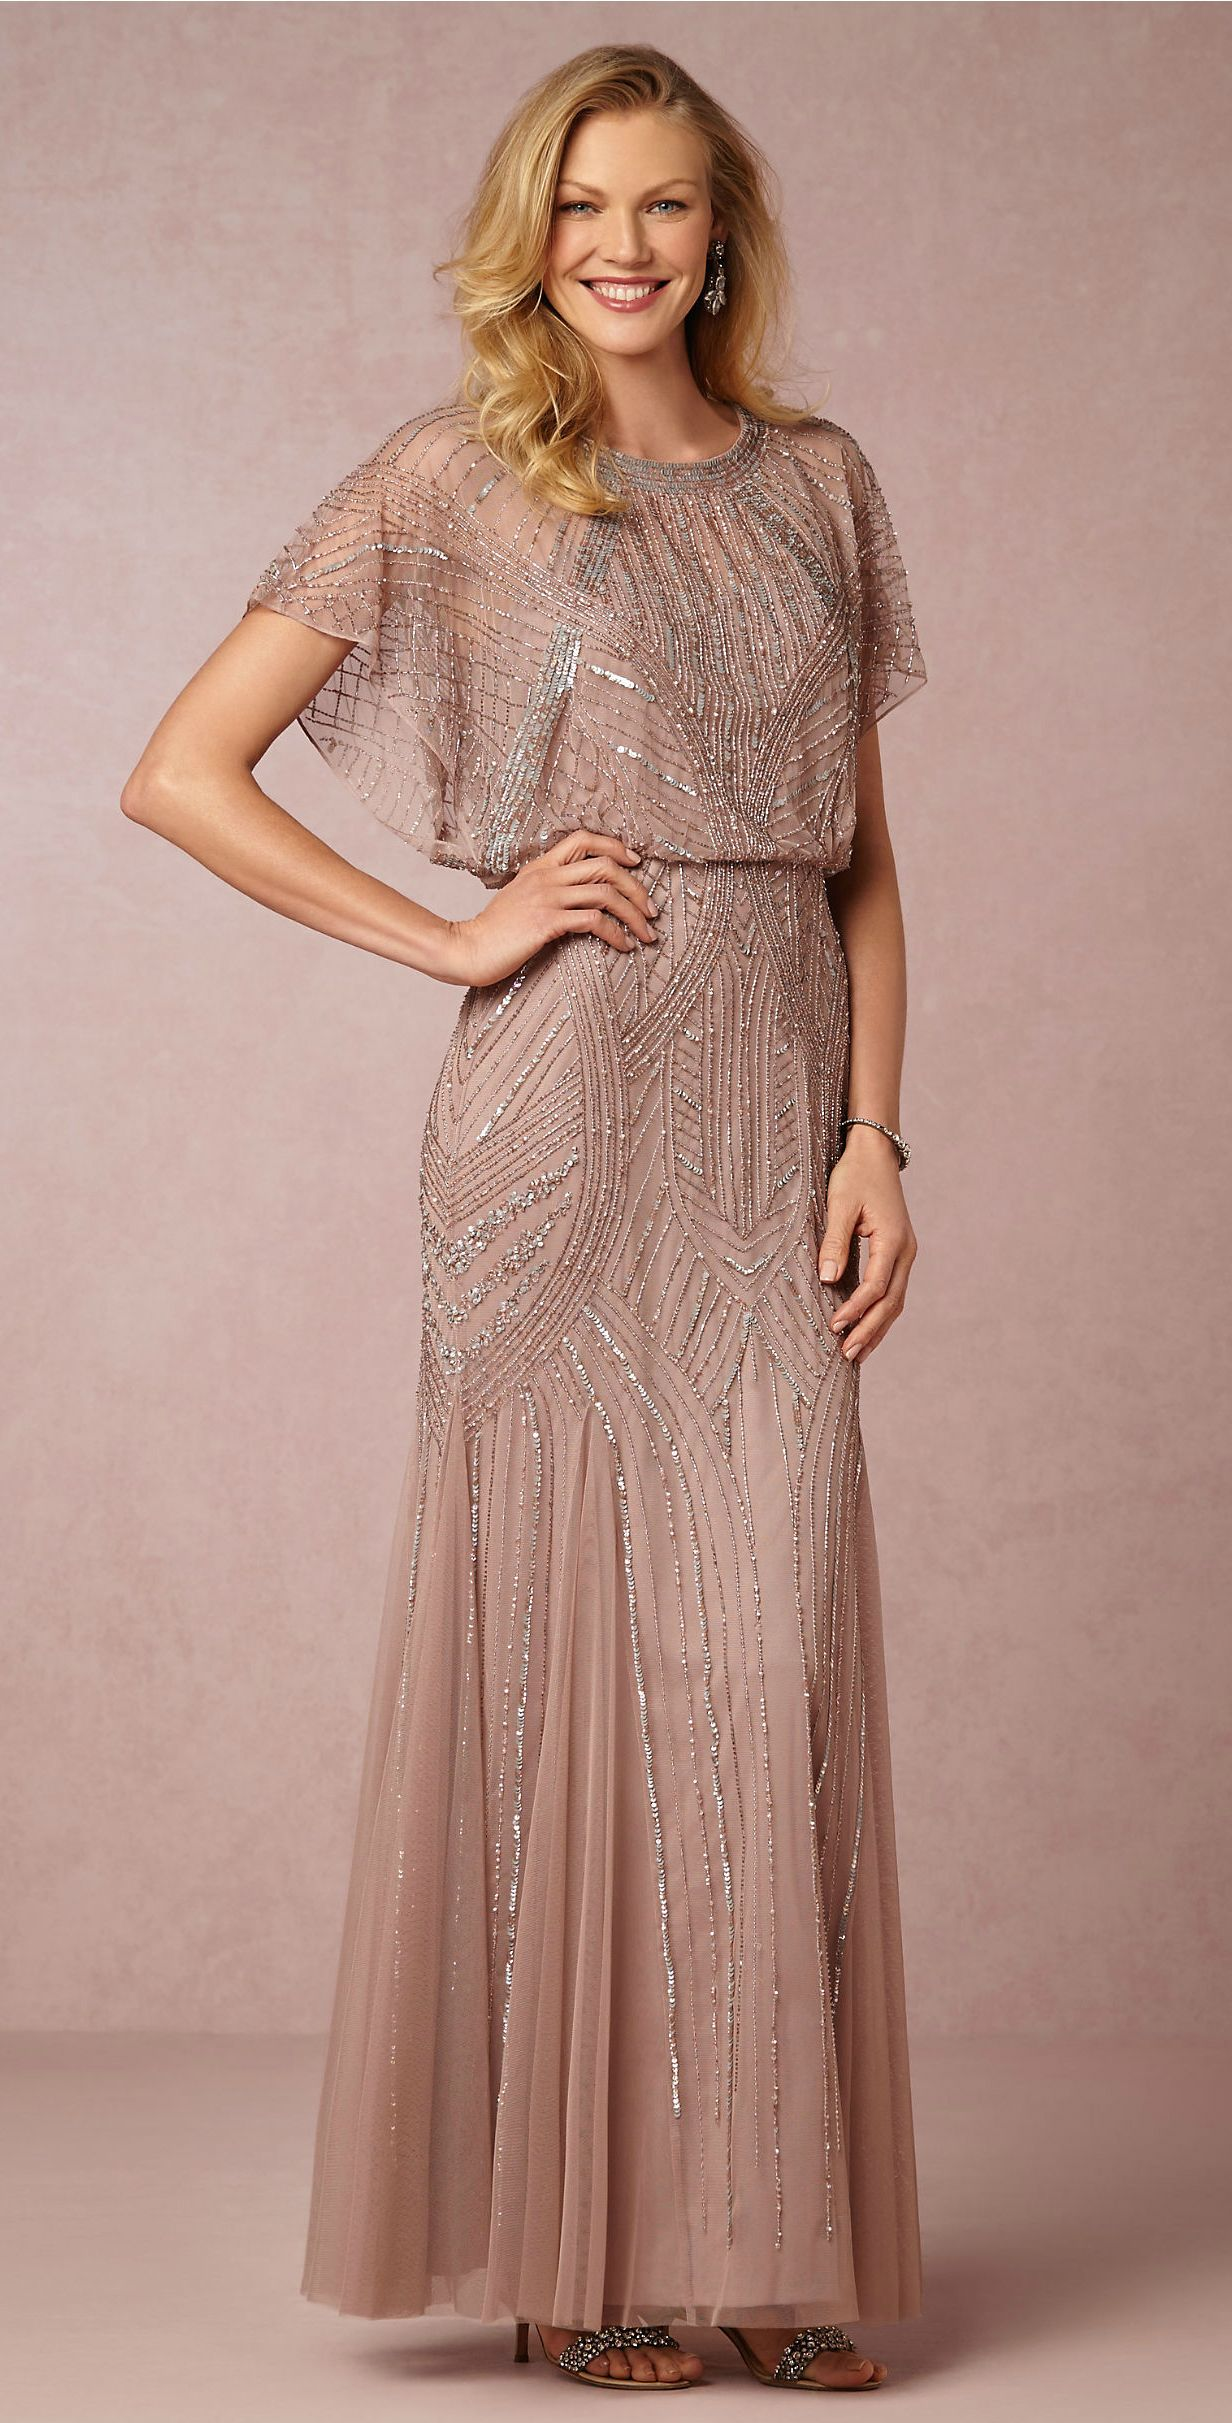 3c0e9aad015c Absolutely beautiful beaded mother-of-the-bride dress in rose mauve with  beading. New at  BHLDN